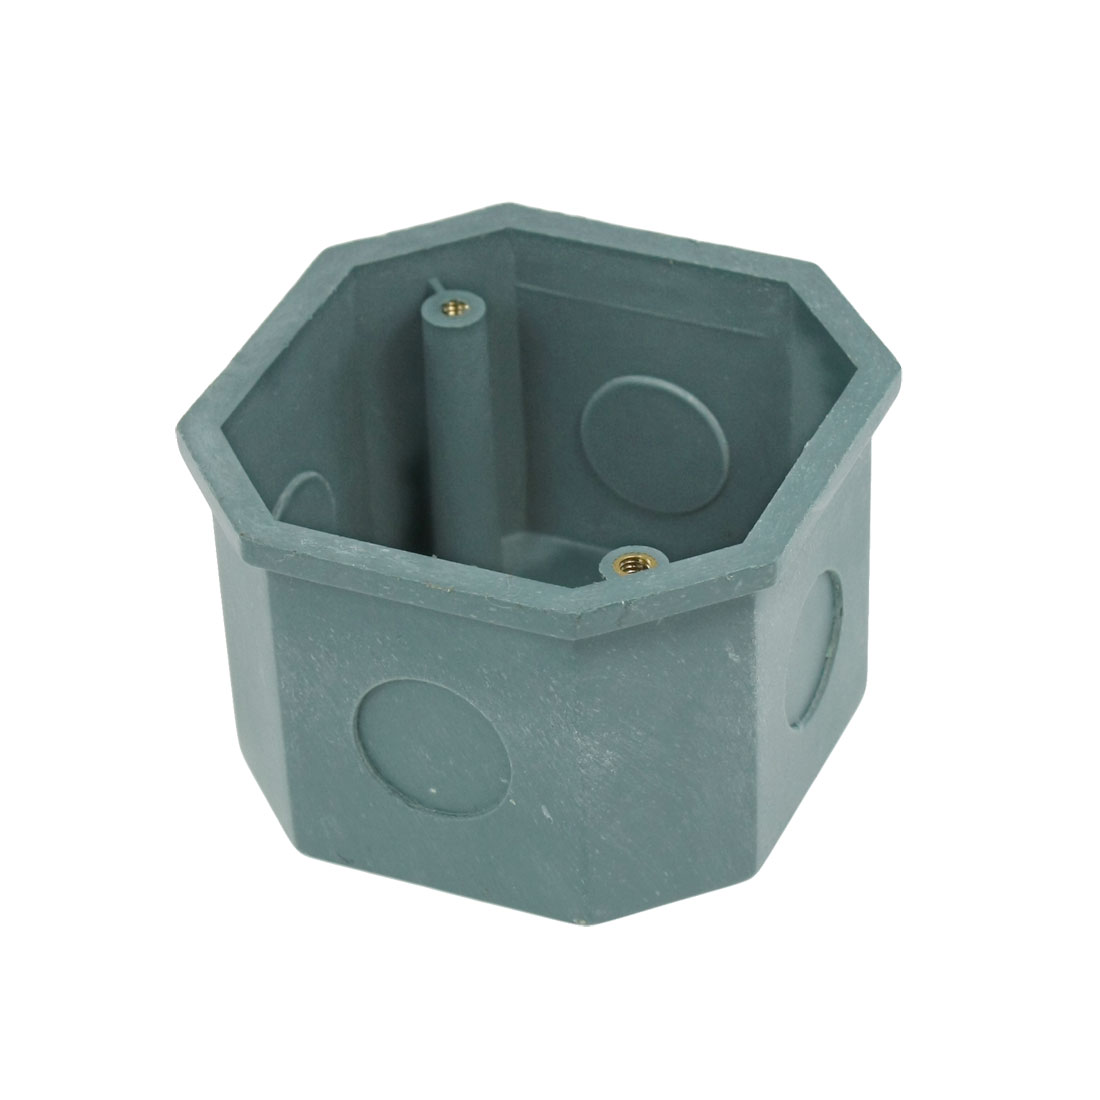 77x77x50mm Flush-Type Green PVC Single Gang Mount Back Box for Wall Socket